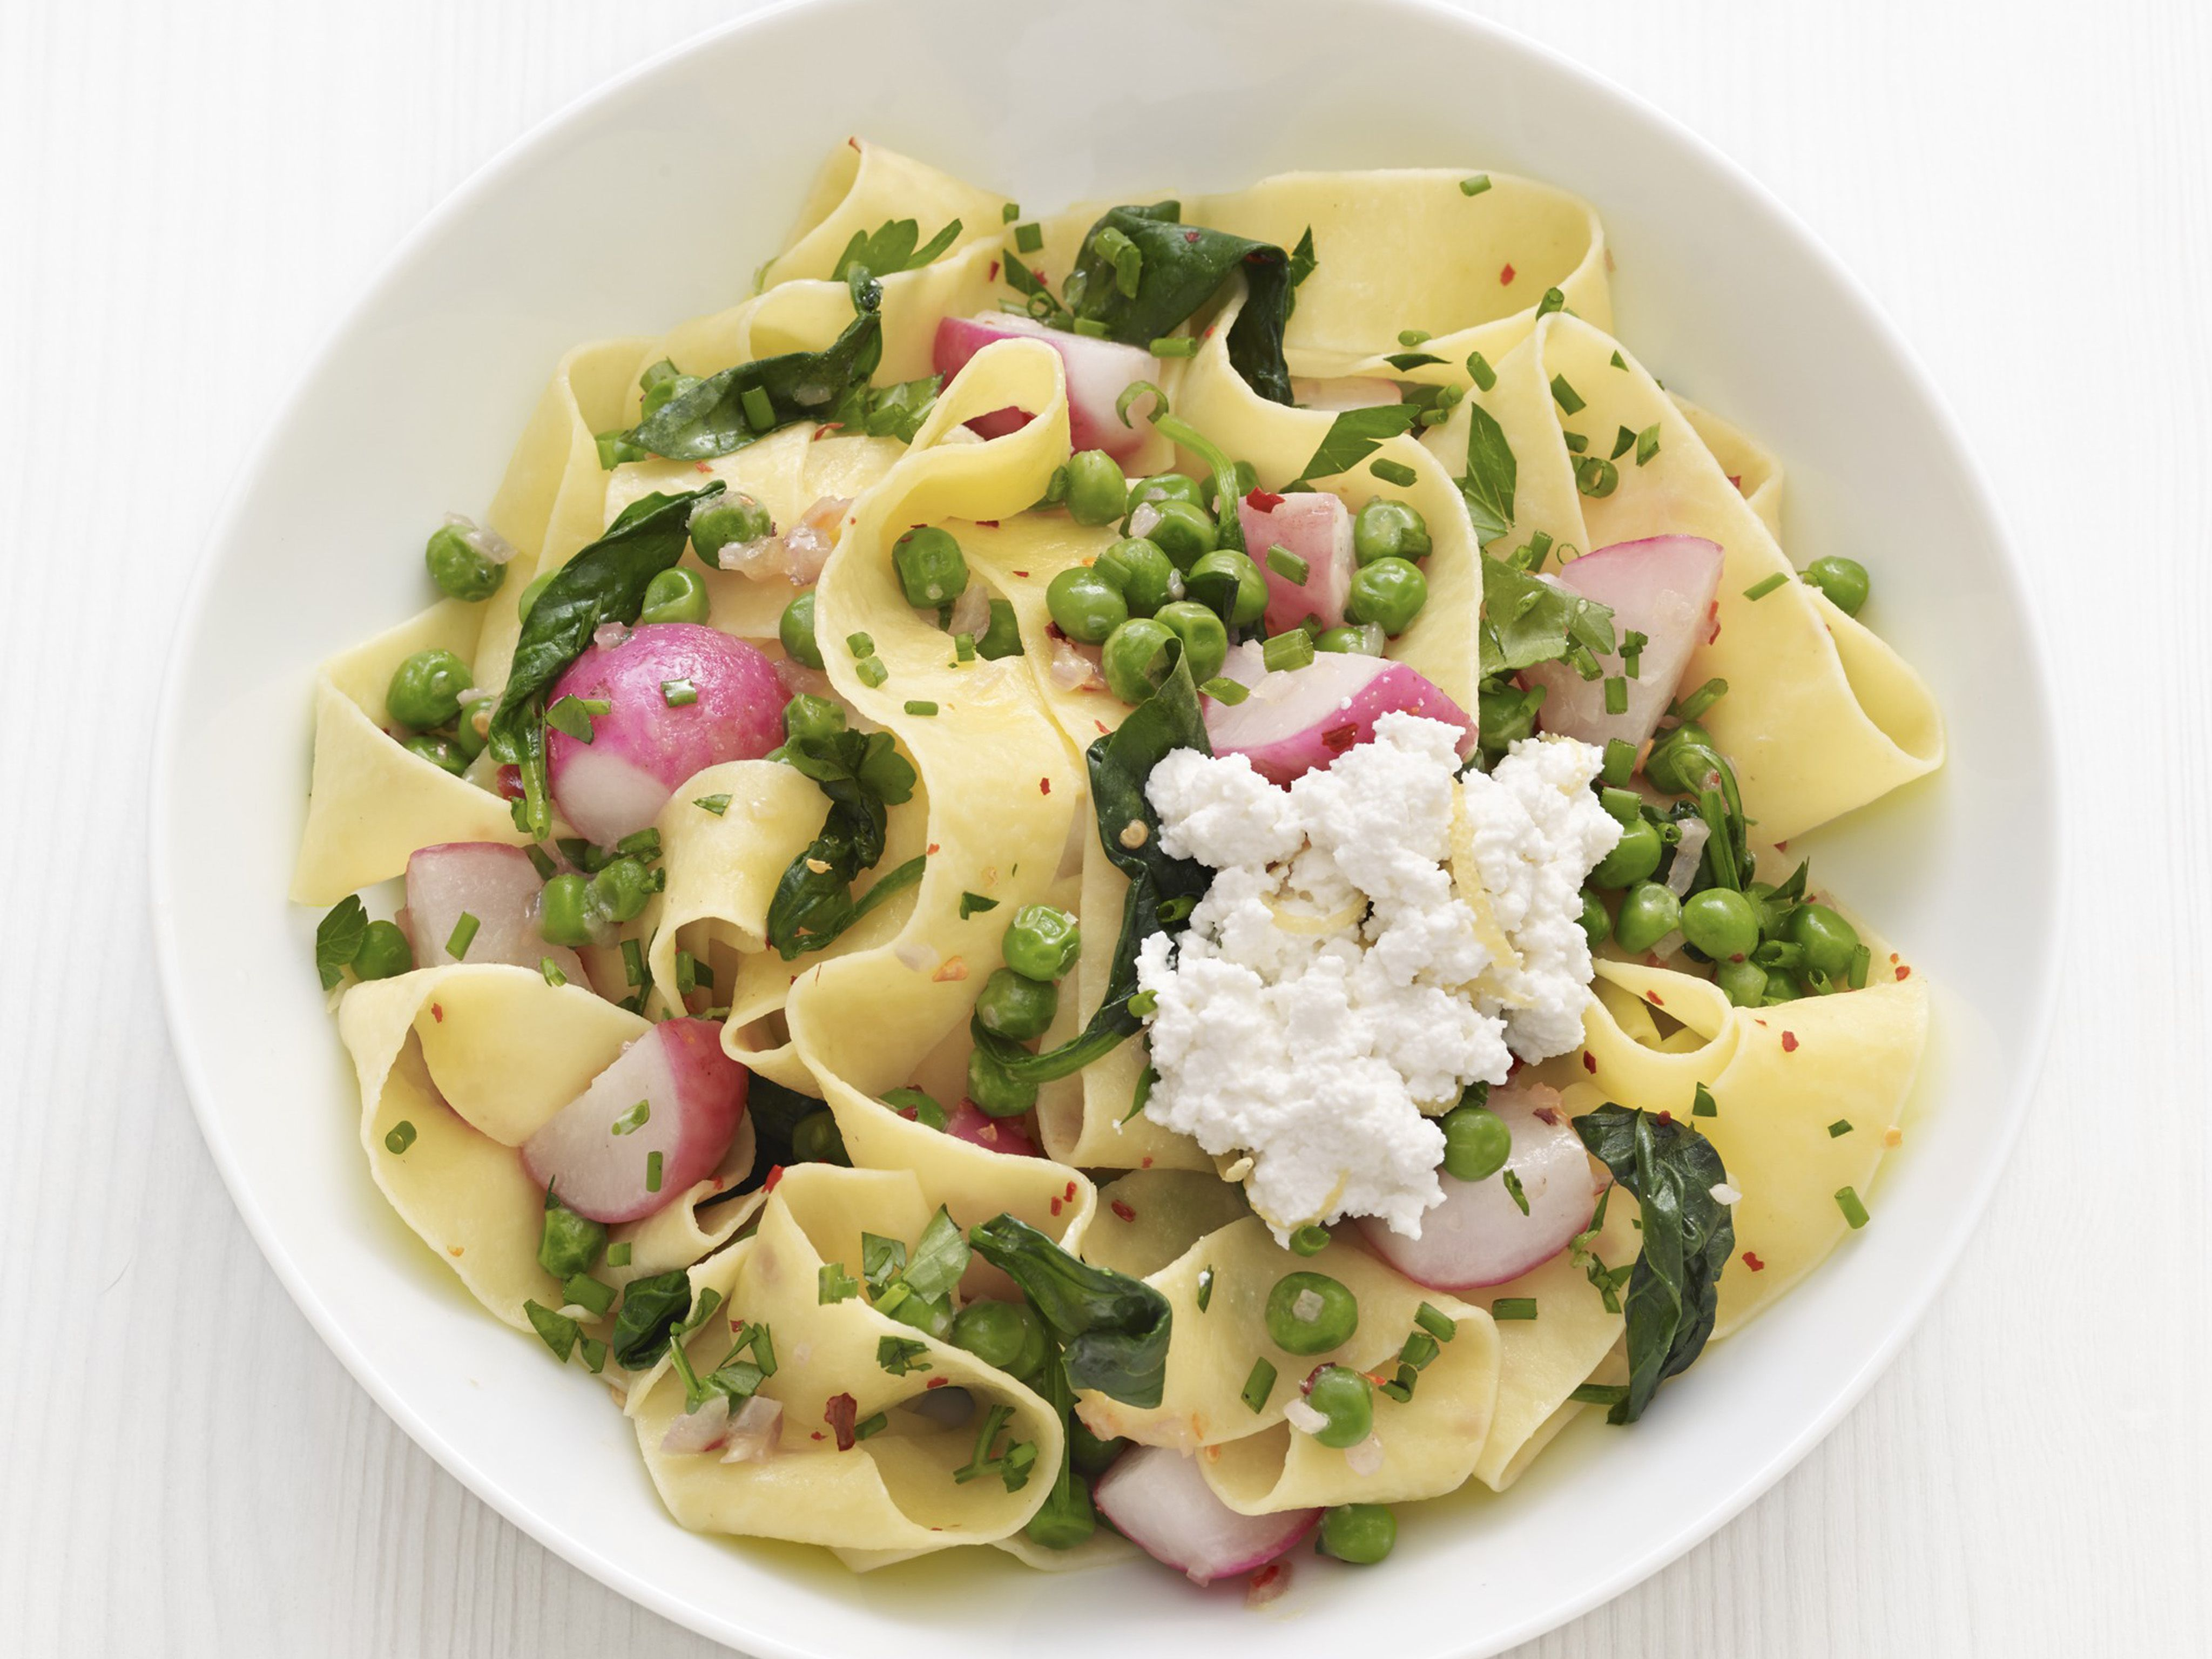 Pappardelle with spring vegetables recipe vegetable recipes pappardelle with spring vegetables forumfinder Images